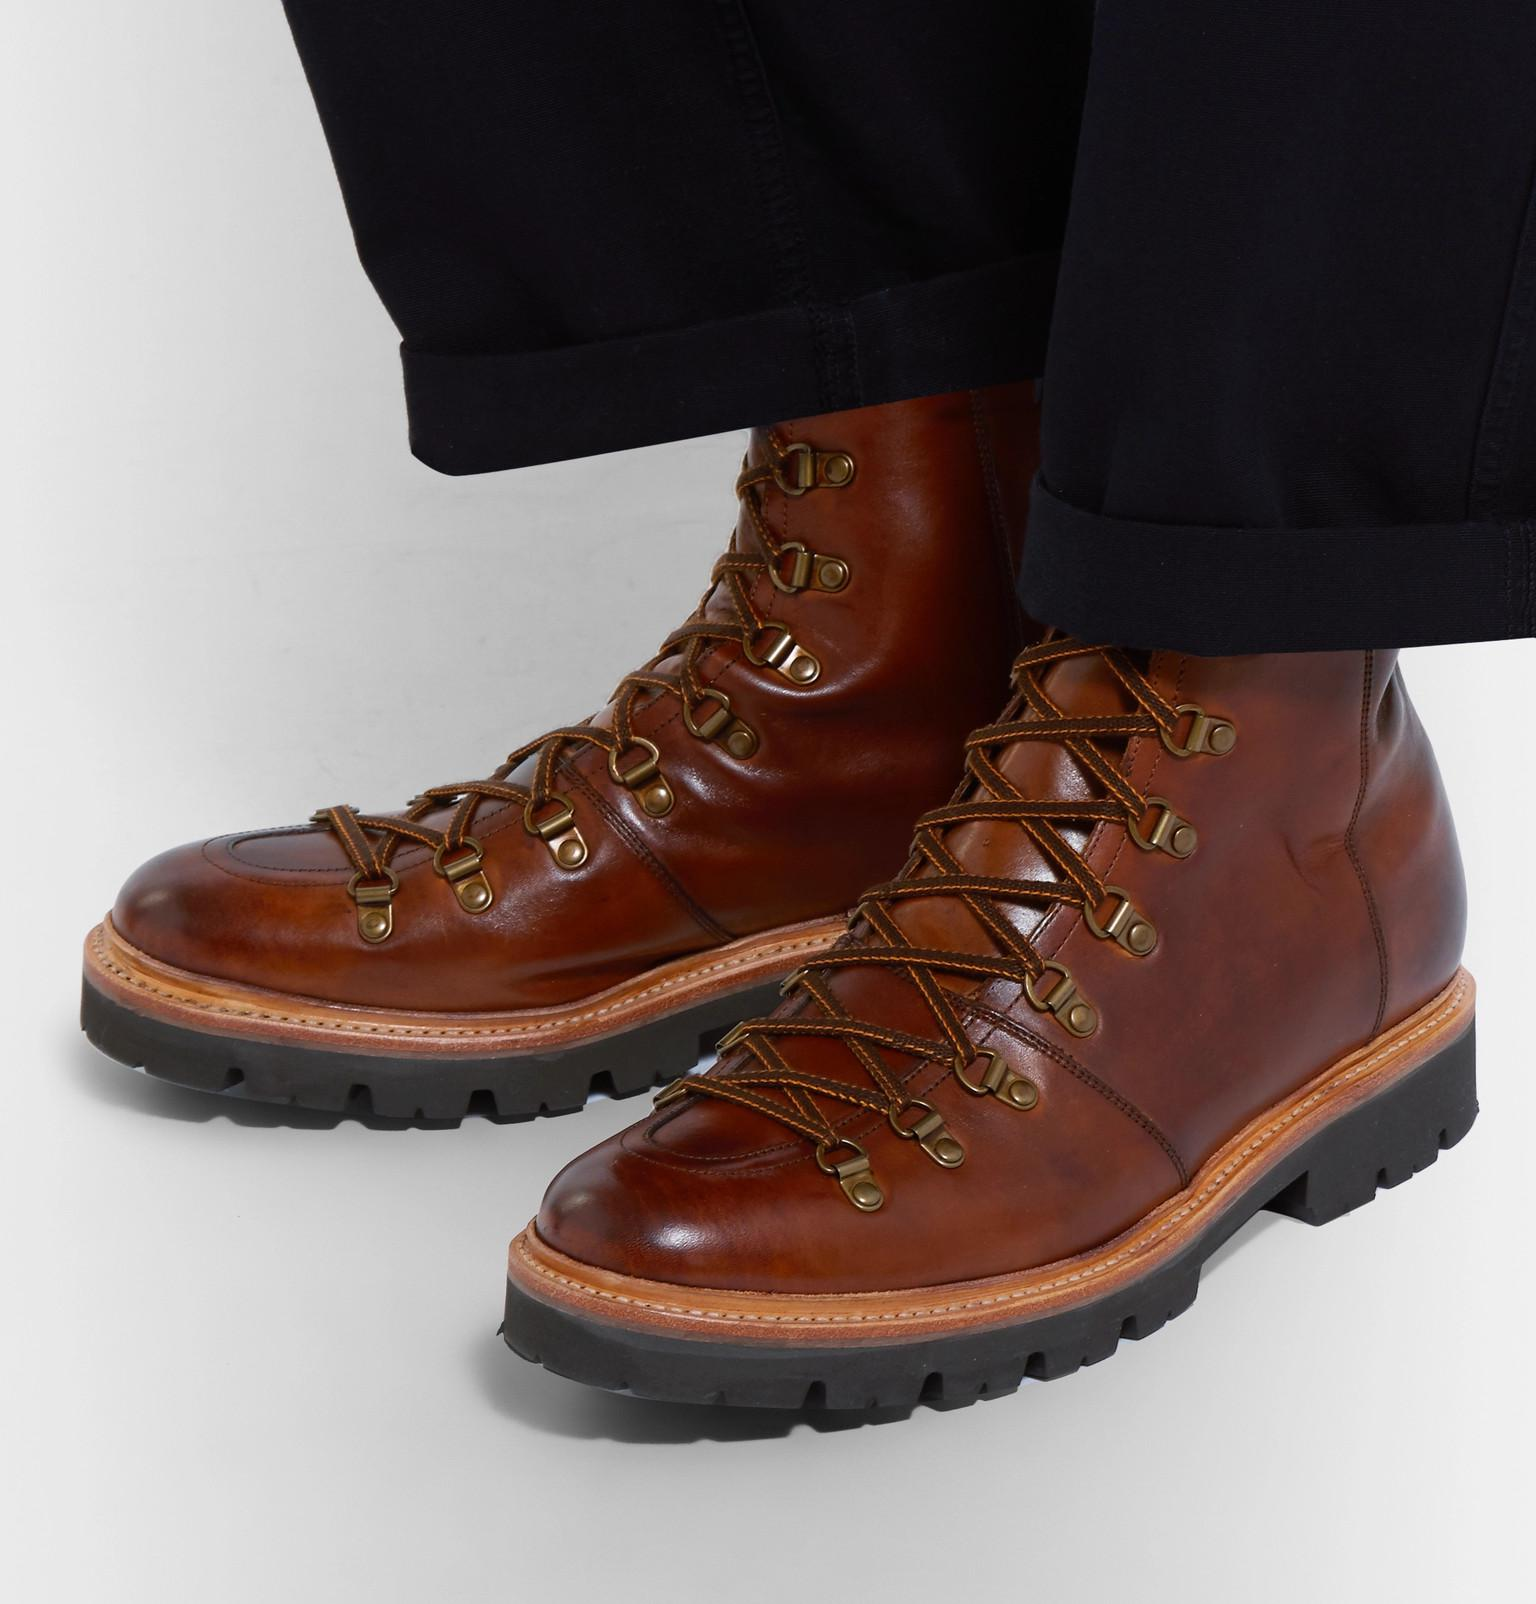 011d75b3d36 Grenson Brady Polished-leather Boots in Brown for Men - Lyst